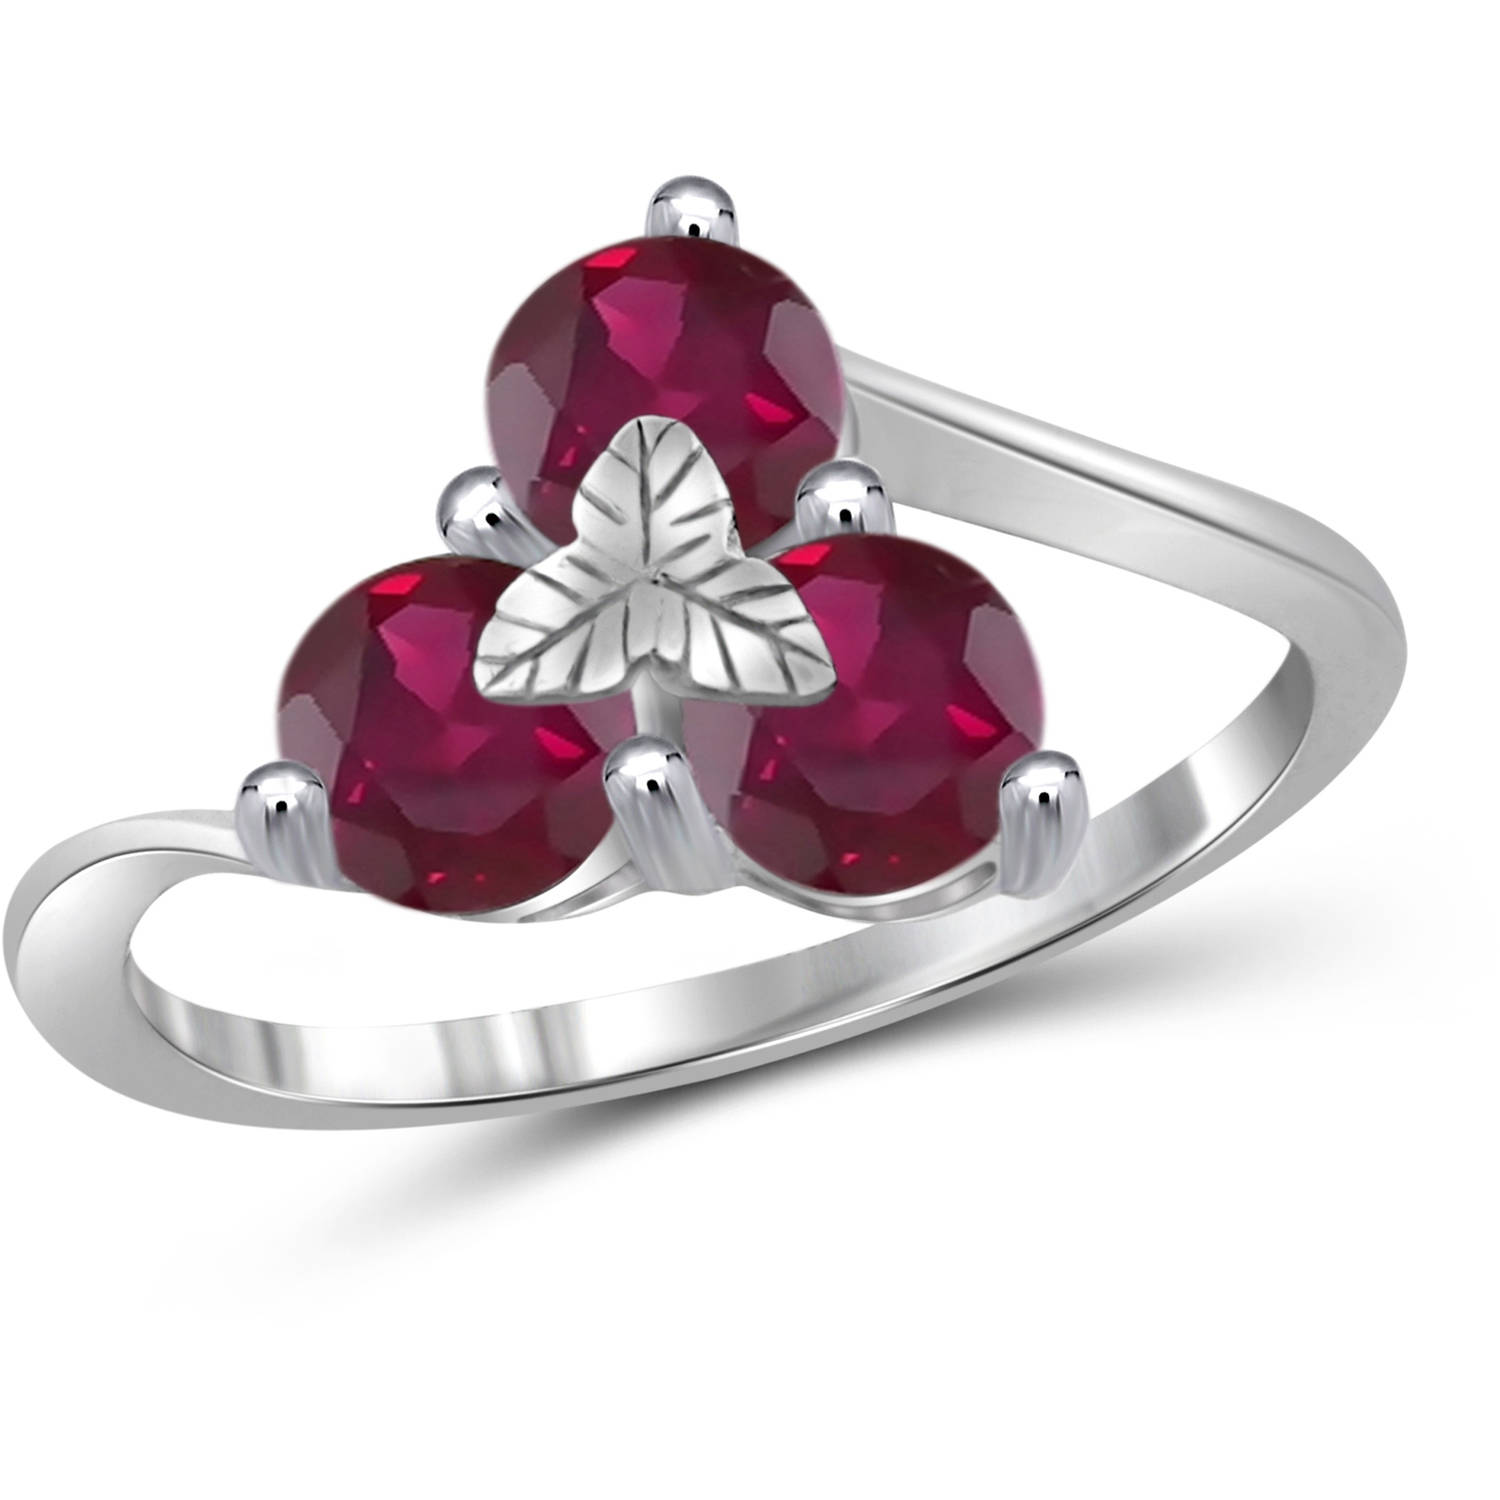 JewelersClub 2.04 Carat T.G.W. Ruby Gemstone Sterling Silver Ring by JewelersClub